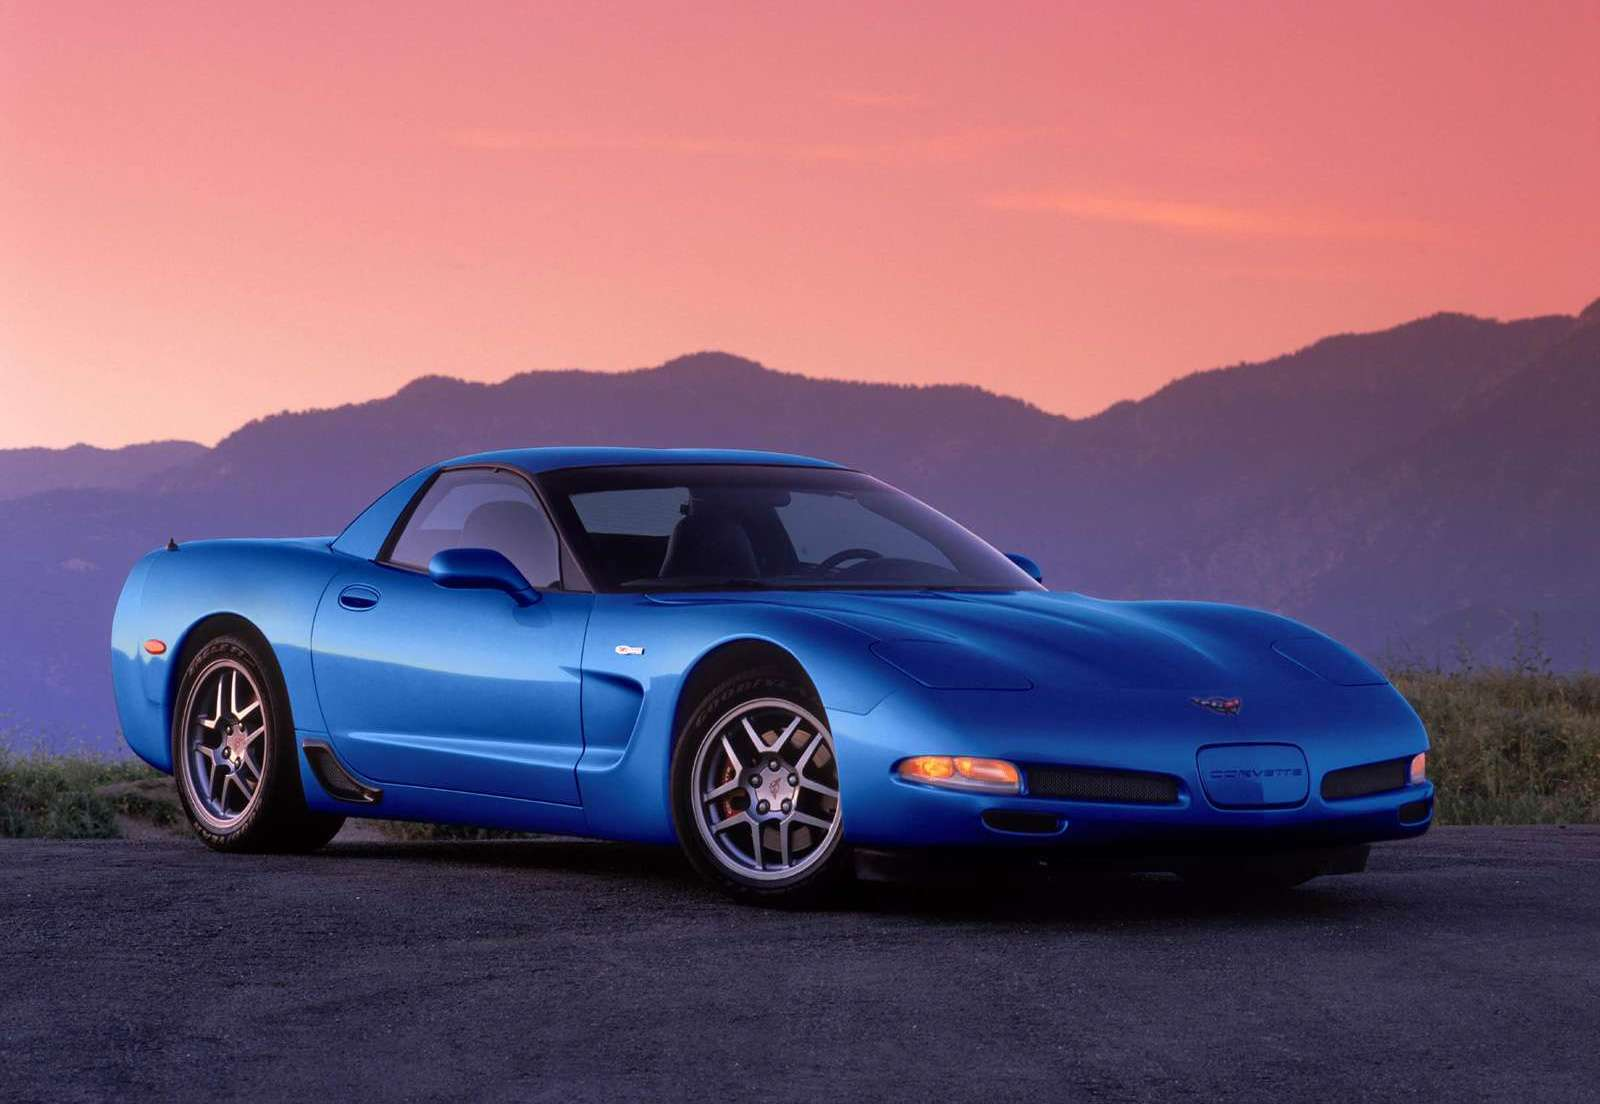 2002 Chevrolet Corvette Z06 front 3/4 blue